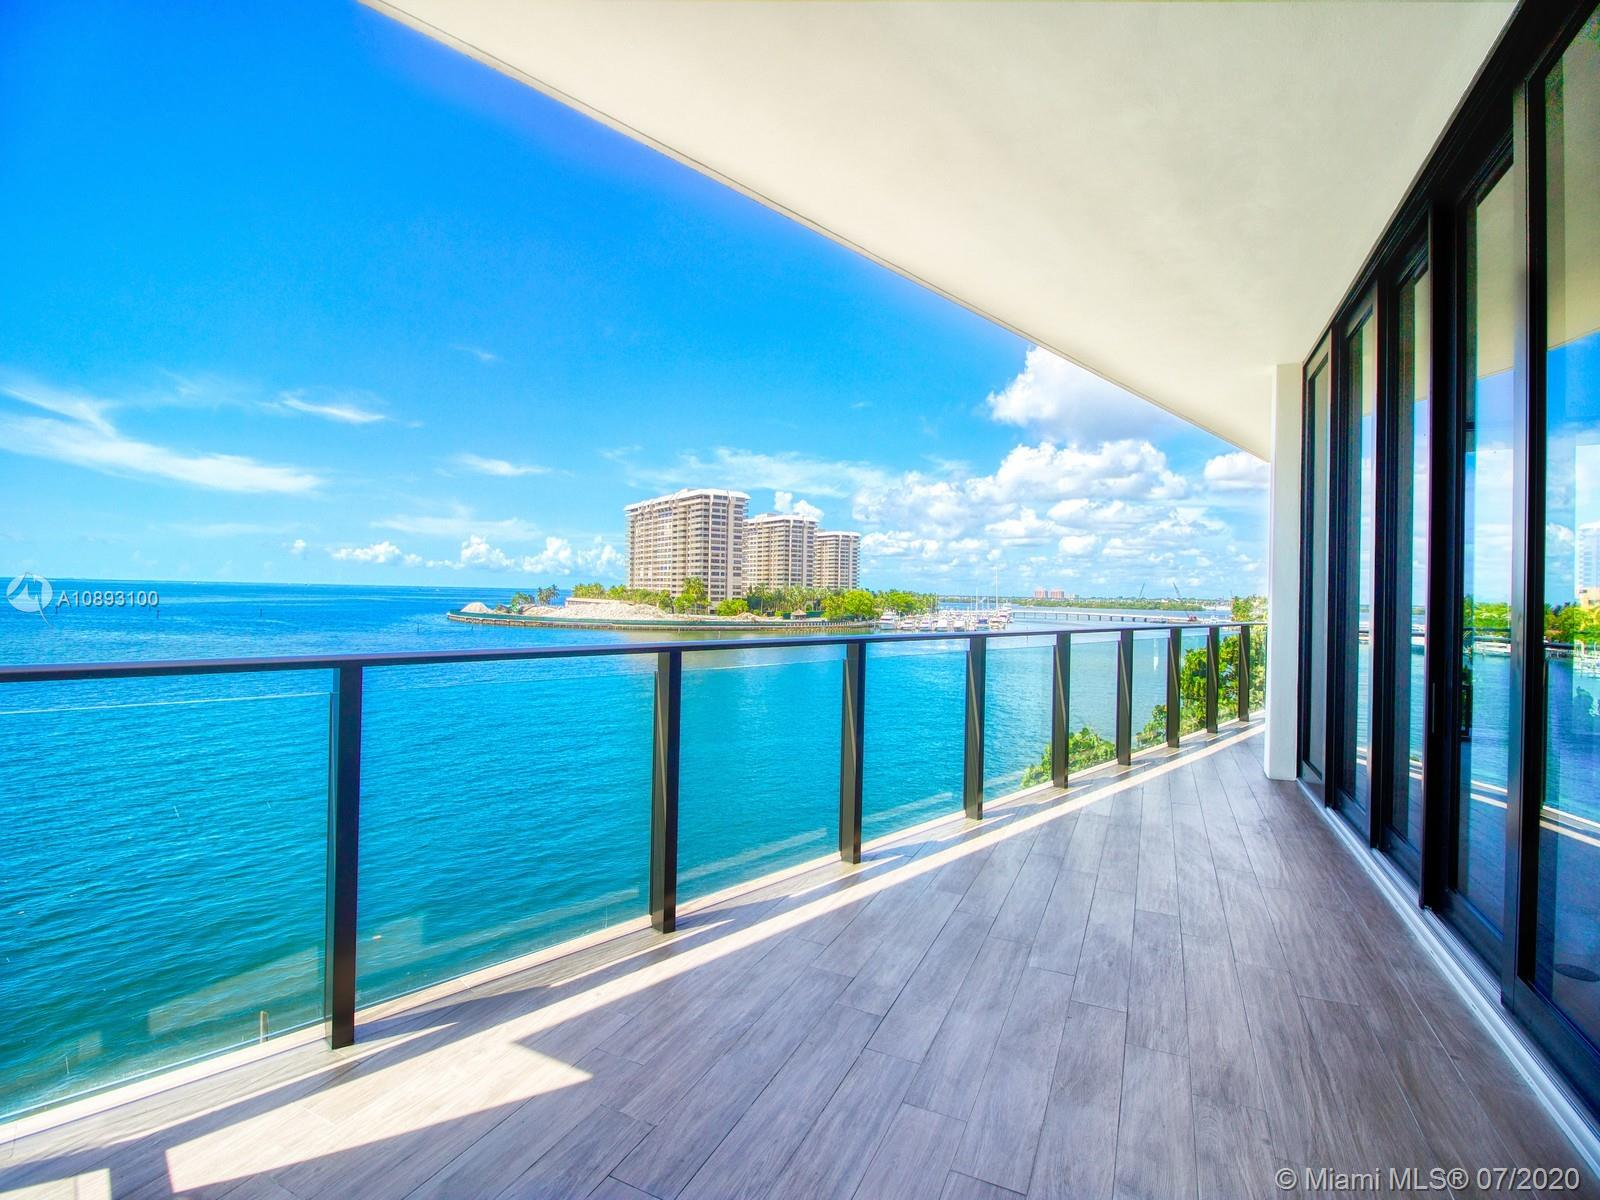 """Welcome to your home oasis! Nestled on a rare waterfront site, The Fairchild Coconut Grove is a Boutique building and architectural masterpiece with 26 residences designed by world renowned and Acclaimed Architect, Max Strang in collaboration with celebrated interior designer, Rafael de Cardenas. This is the only available three bedroom unit in the highly coveted """"Beasley"""" line. You will step out of your private elevator foyer and into a world of moving walls of glass, natural stone flooring, 11' ceilings and a private 760 sqft wrap-around terrace with access points from each room and includes a private outdoor shower overlooking the bay. With 3206 sqft of total living space, this spectacular home offers 3BR's/4.5BA's + service quarters."""